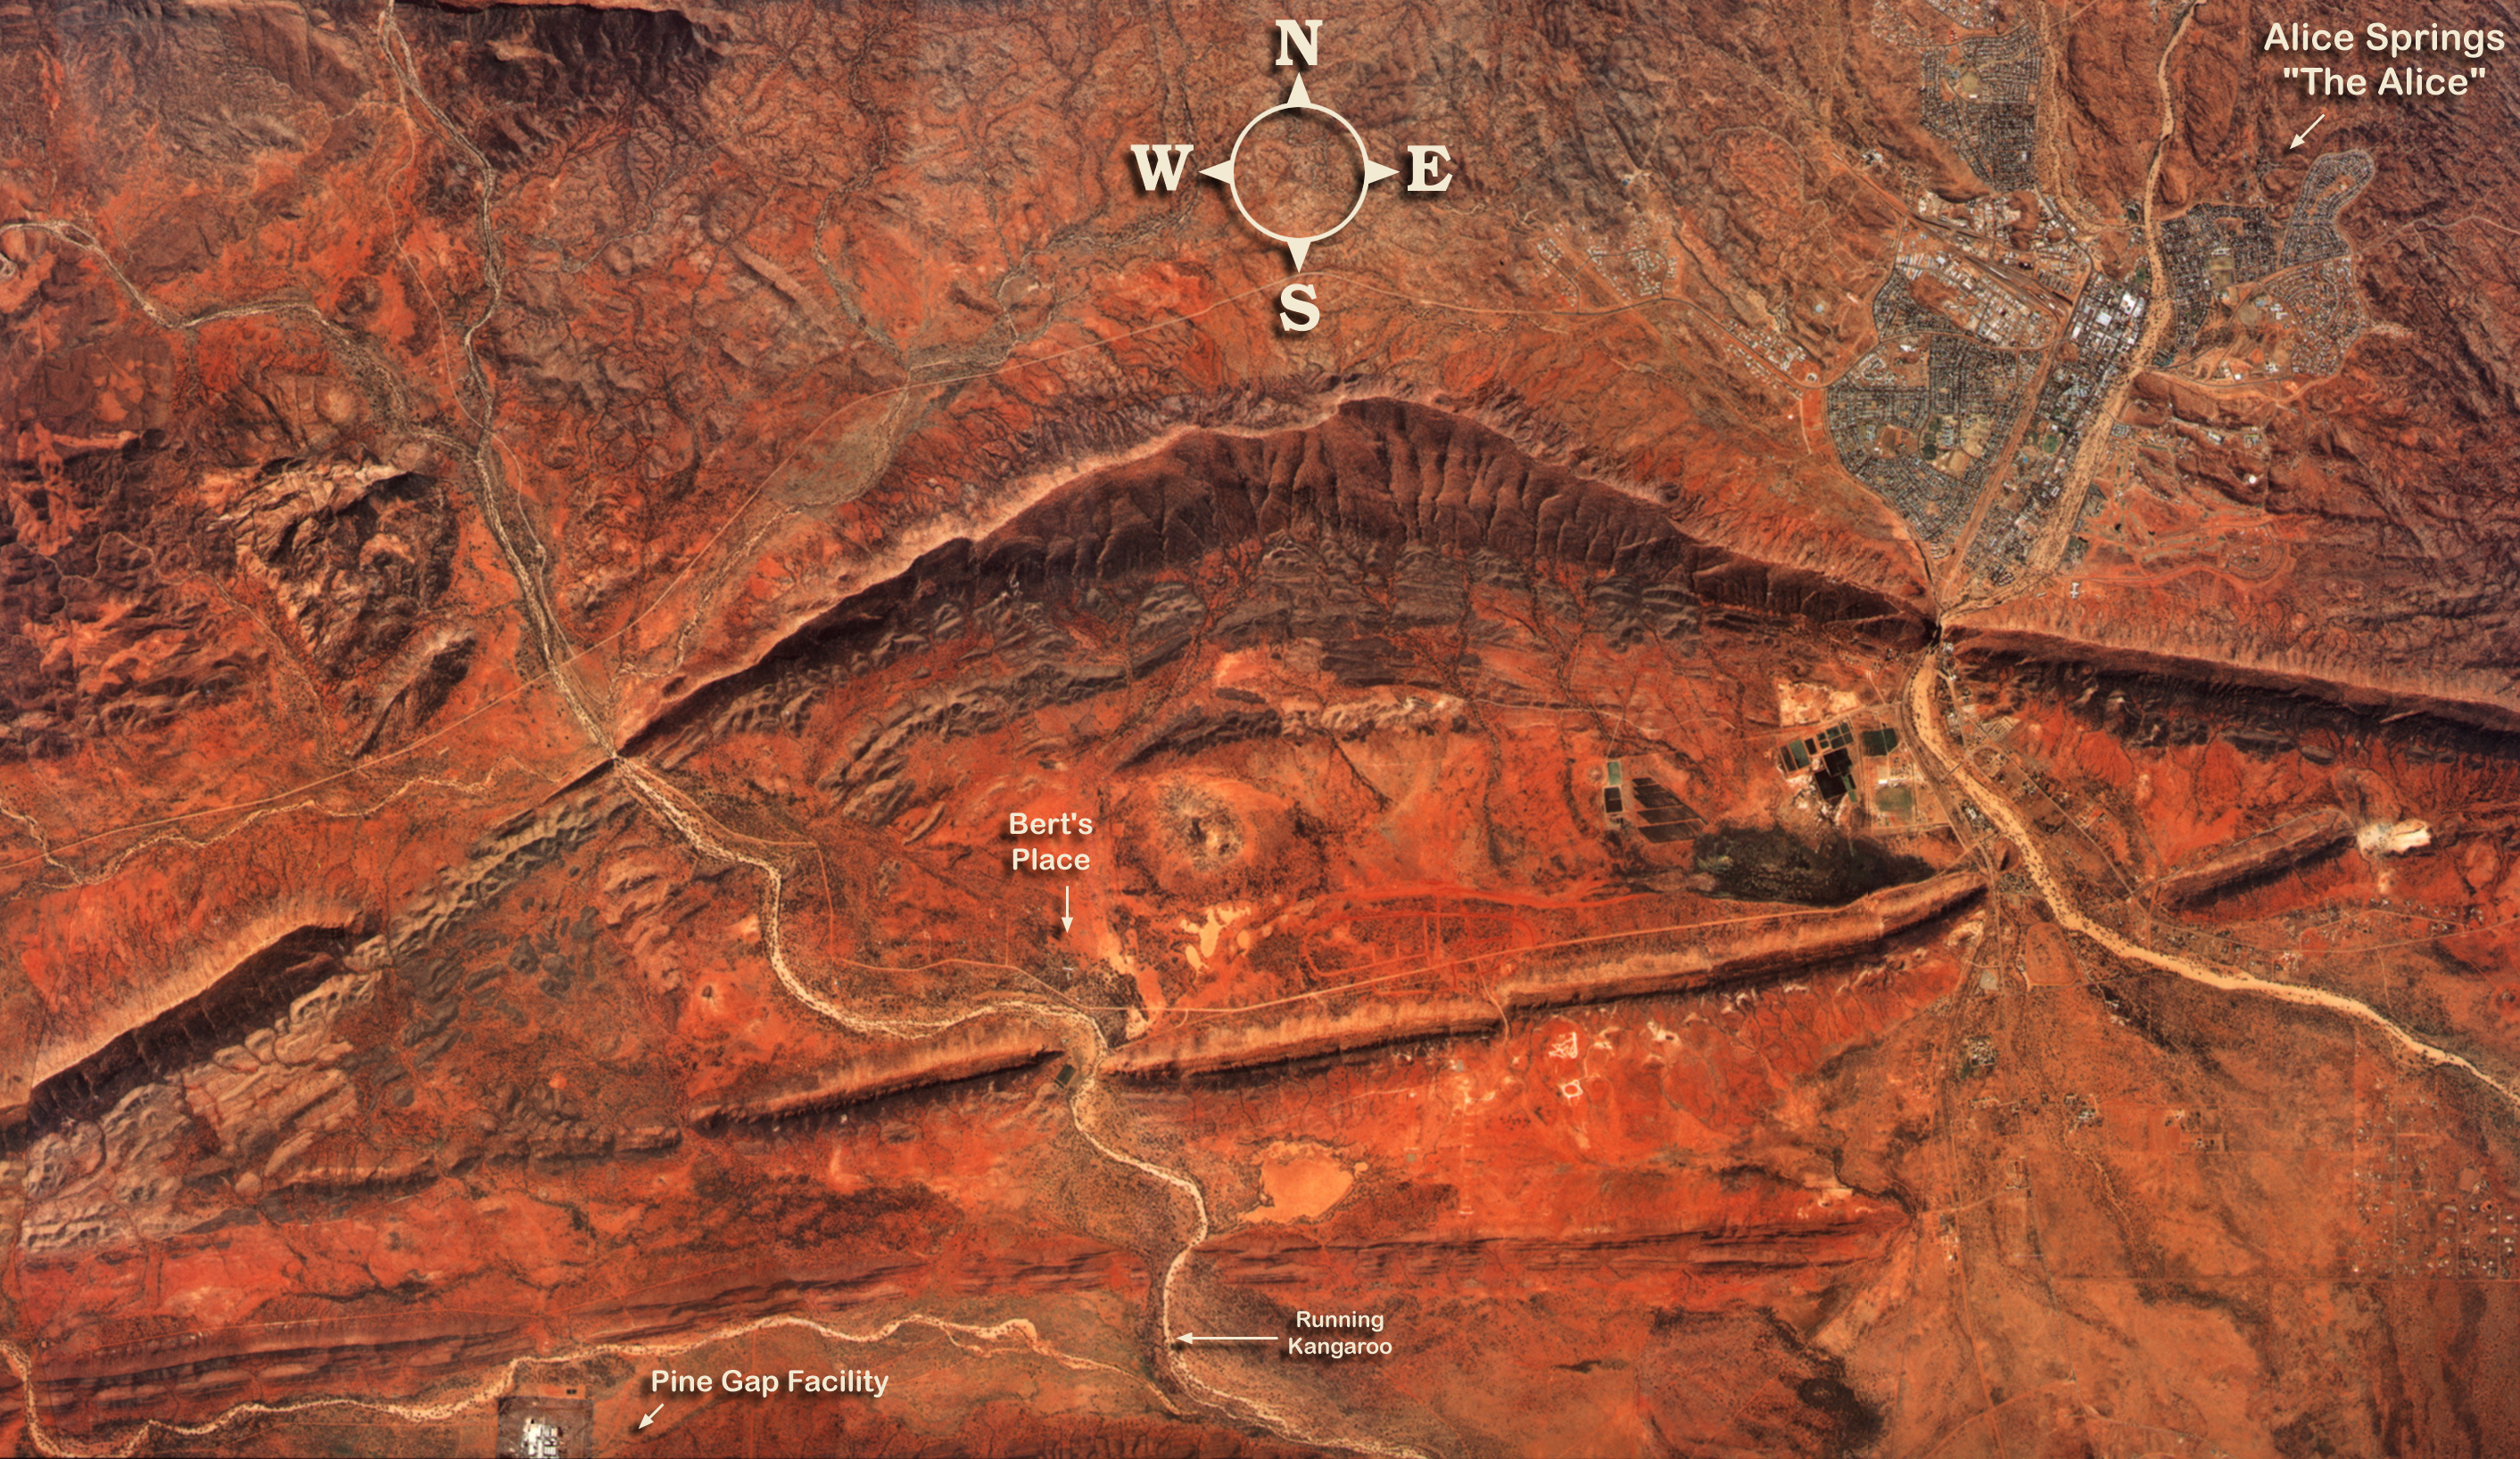 http://www.standeyo.com/stans.files/Cosmic_Conspiracy_items/Pine_Gap/map_1a.jpg